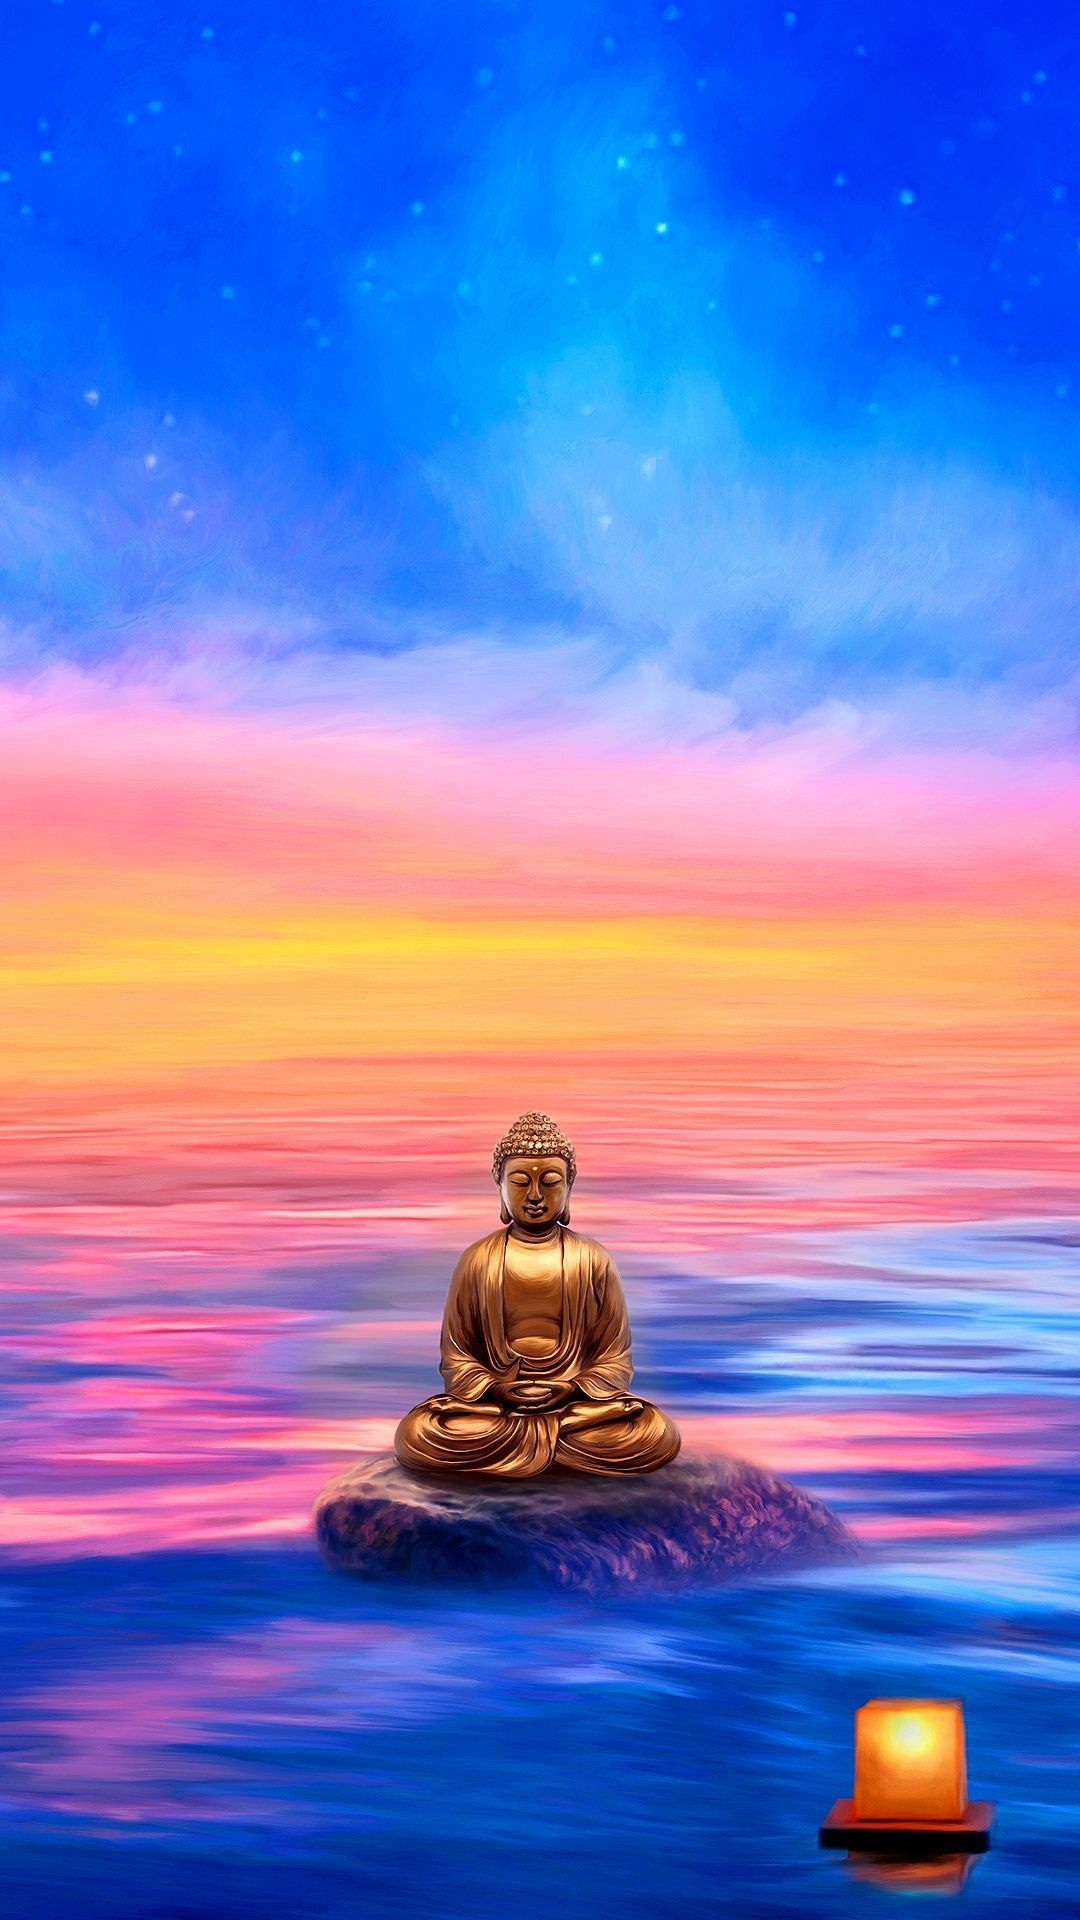 Res 1080x1920 Buddha Wallpaper For Mobile Devices Artwork By Goodvibesgallery Com Buddha Wallpaper Iphone Lord Buddha Wallpapers Buddhism Wallpaper